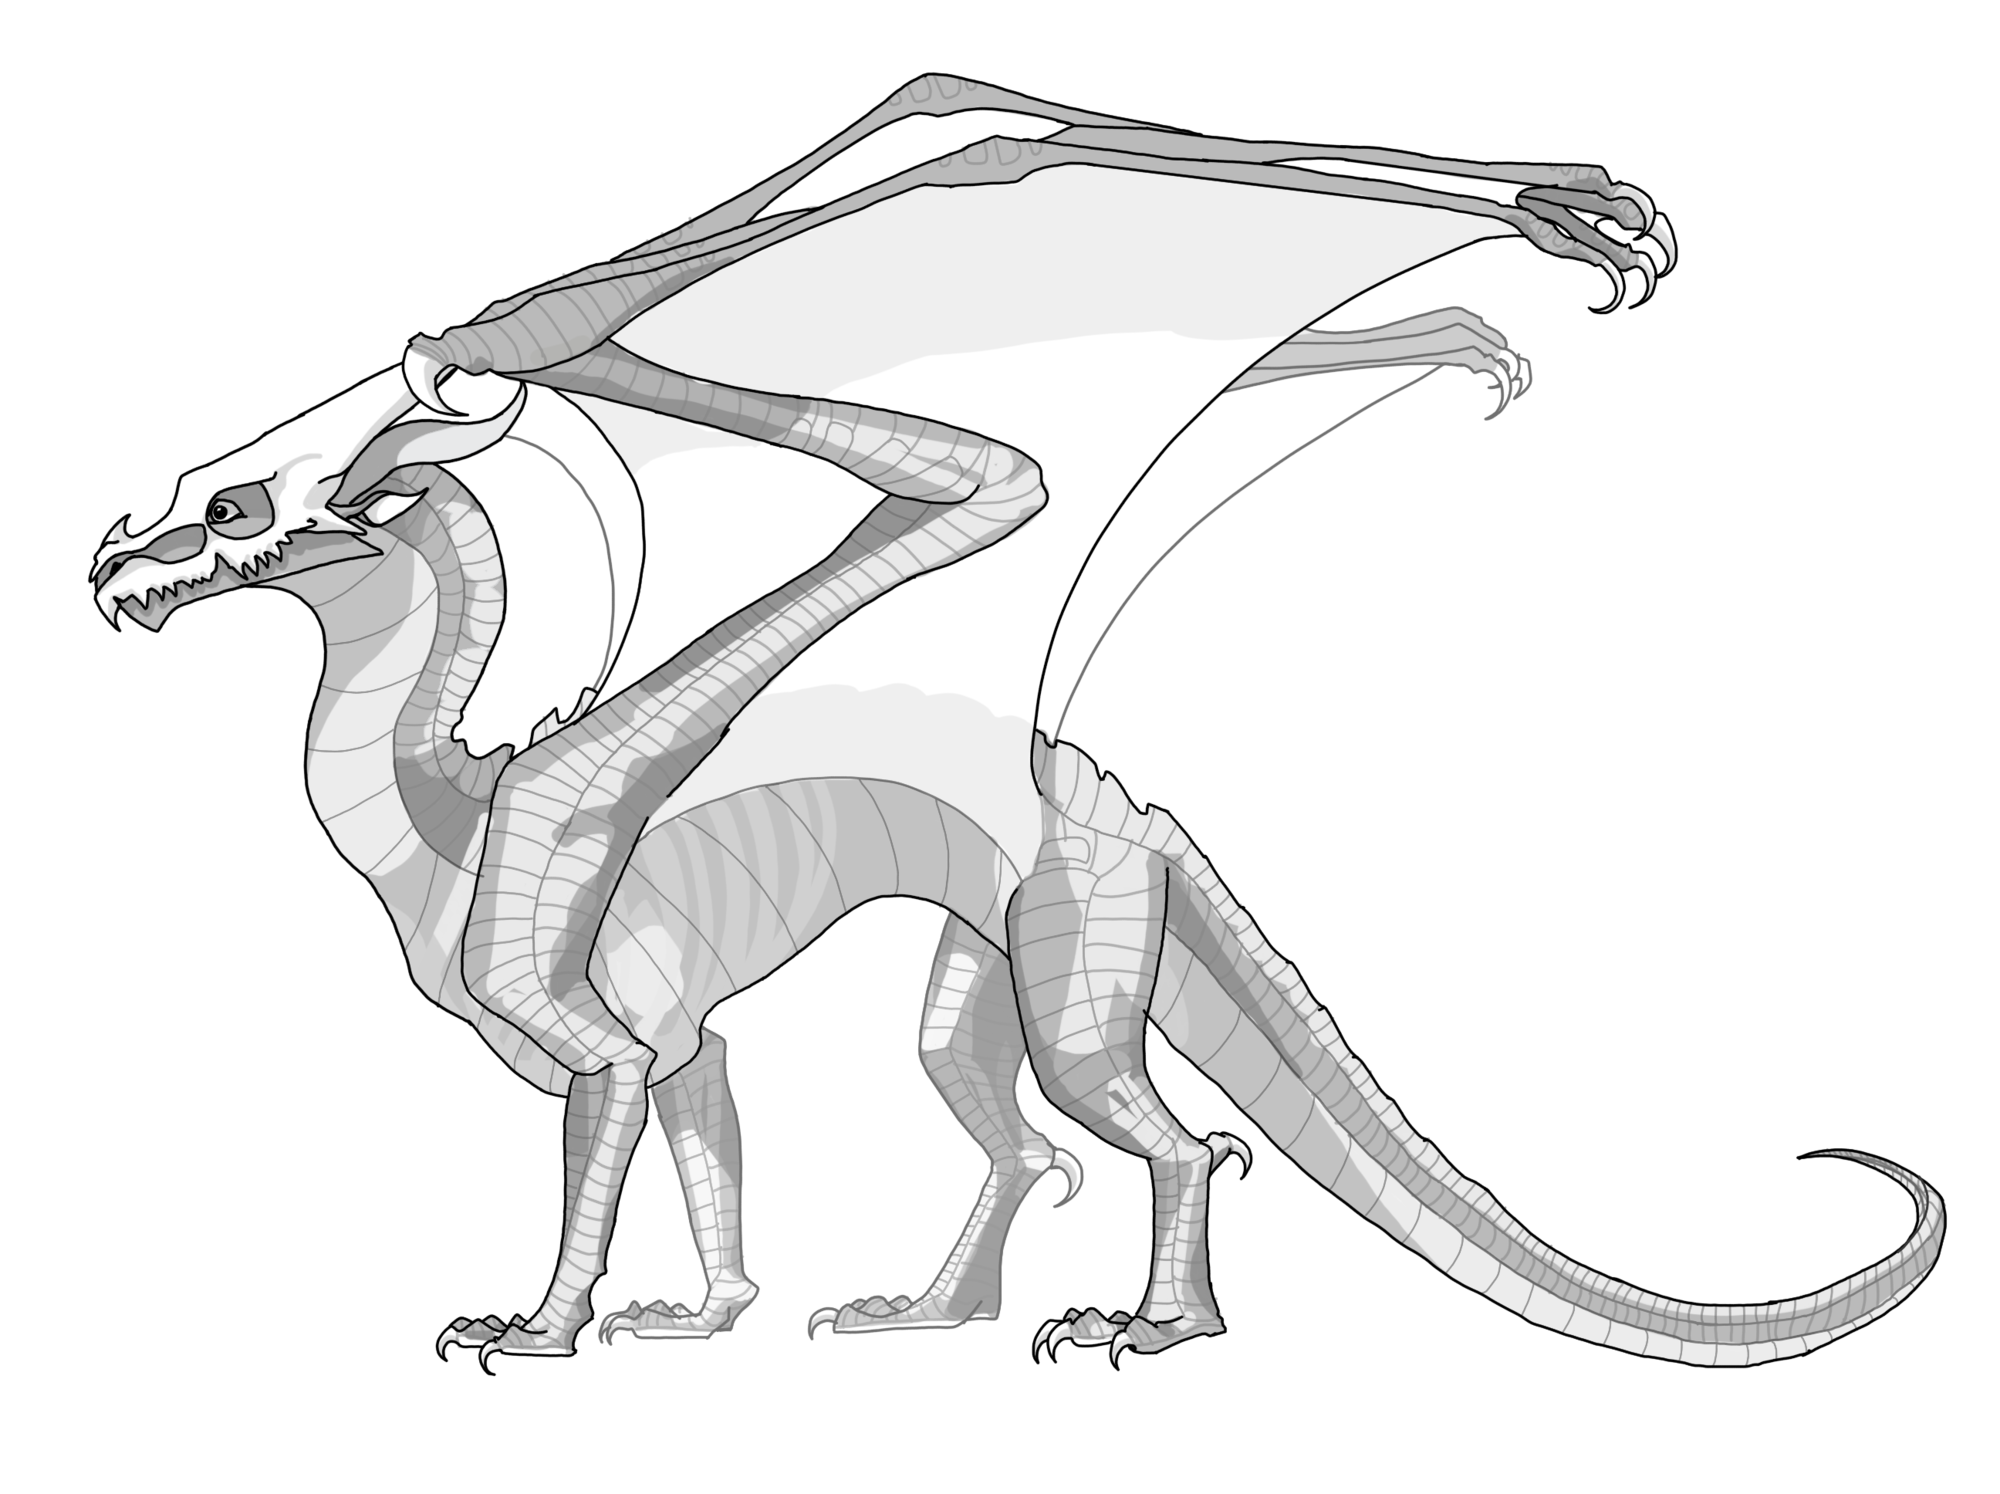 skywing dragon transparent skywing base by glowingscales on deviantart dragon skywing